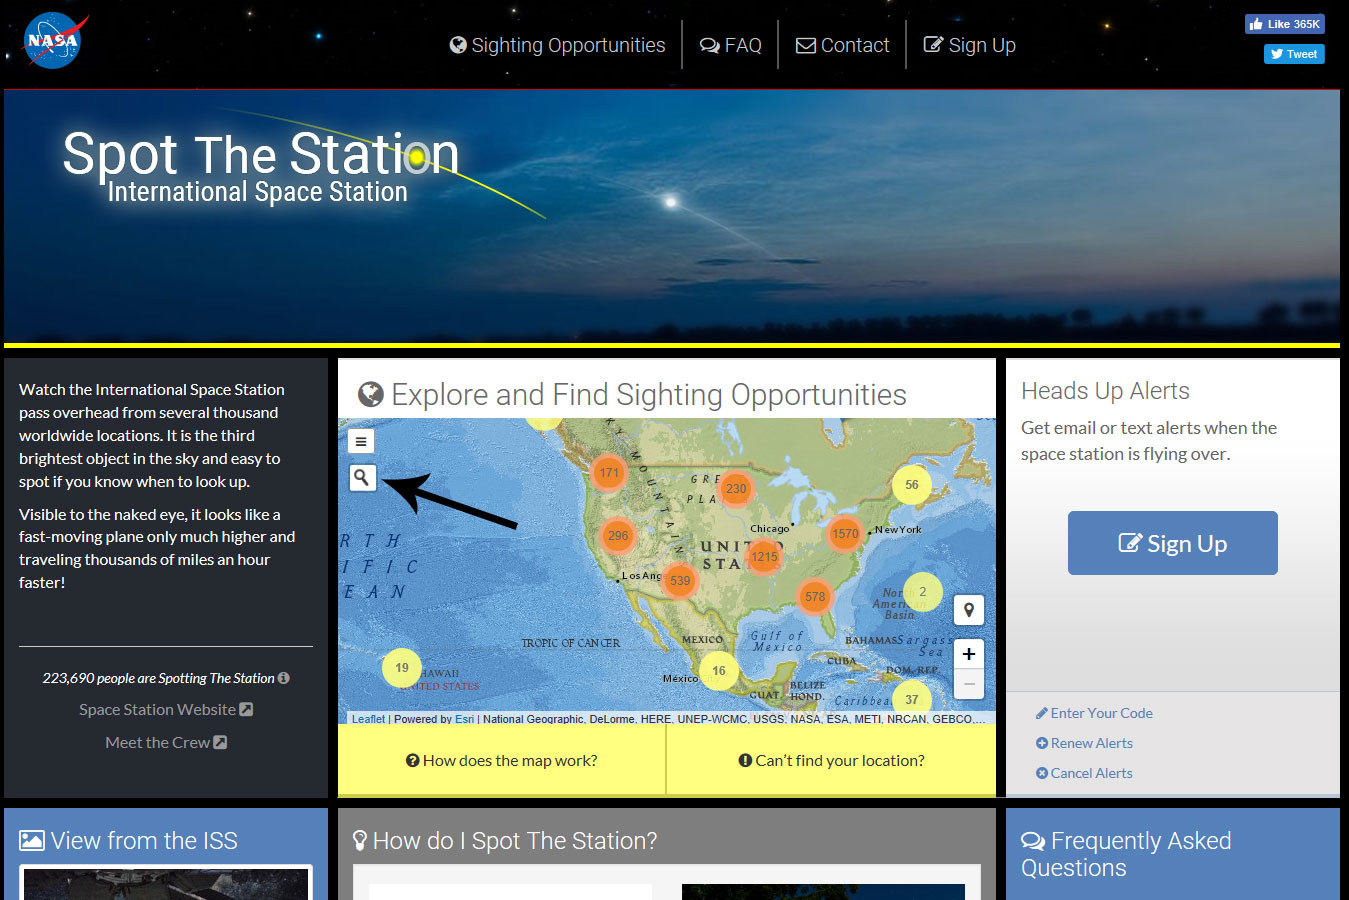 NASA's Spot the Station website